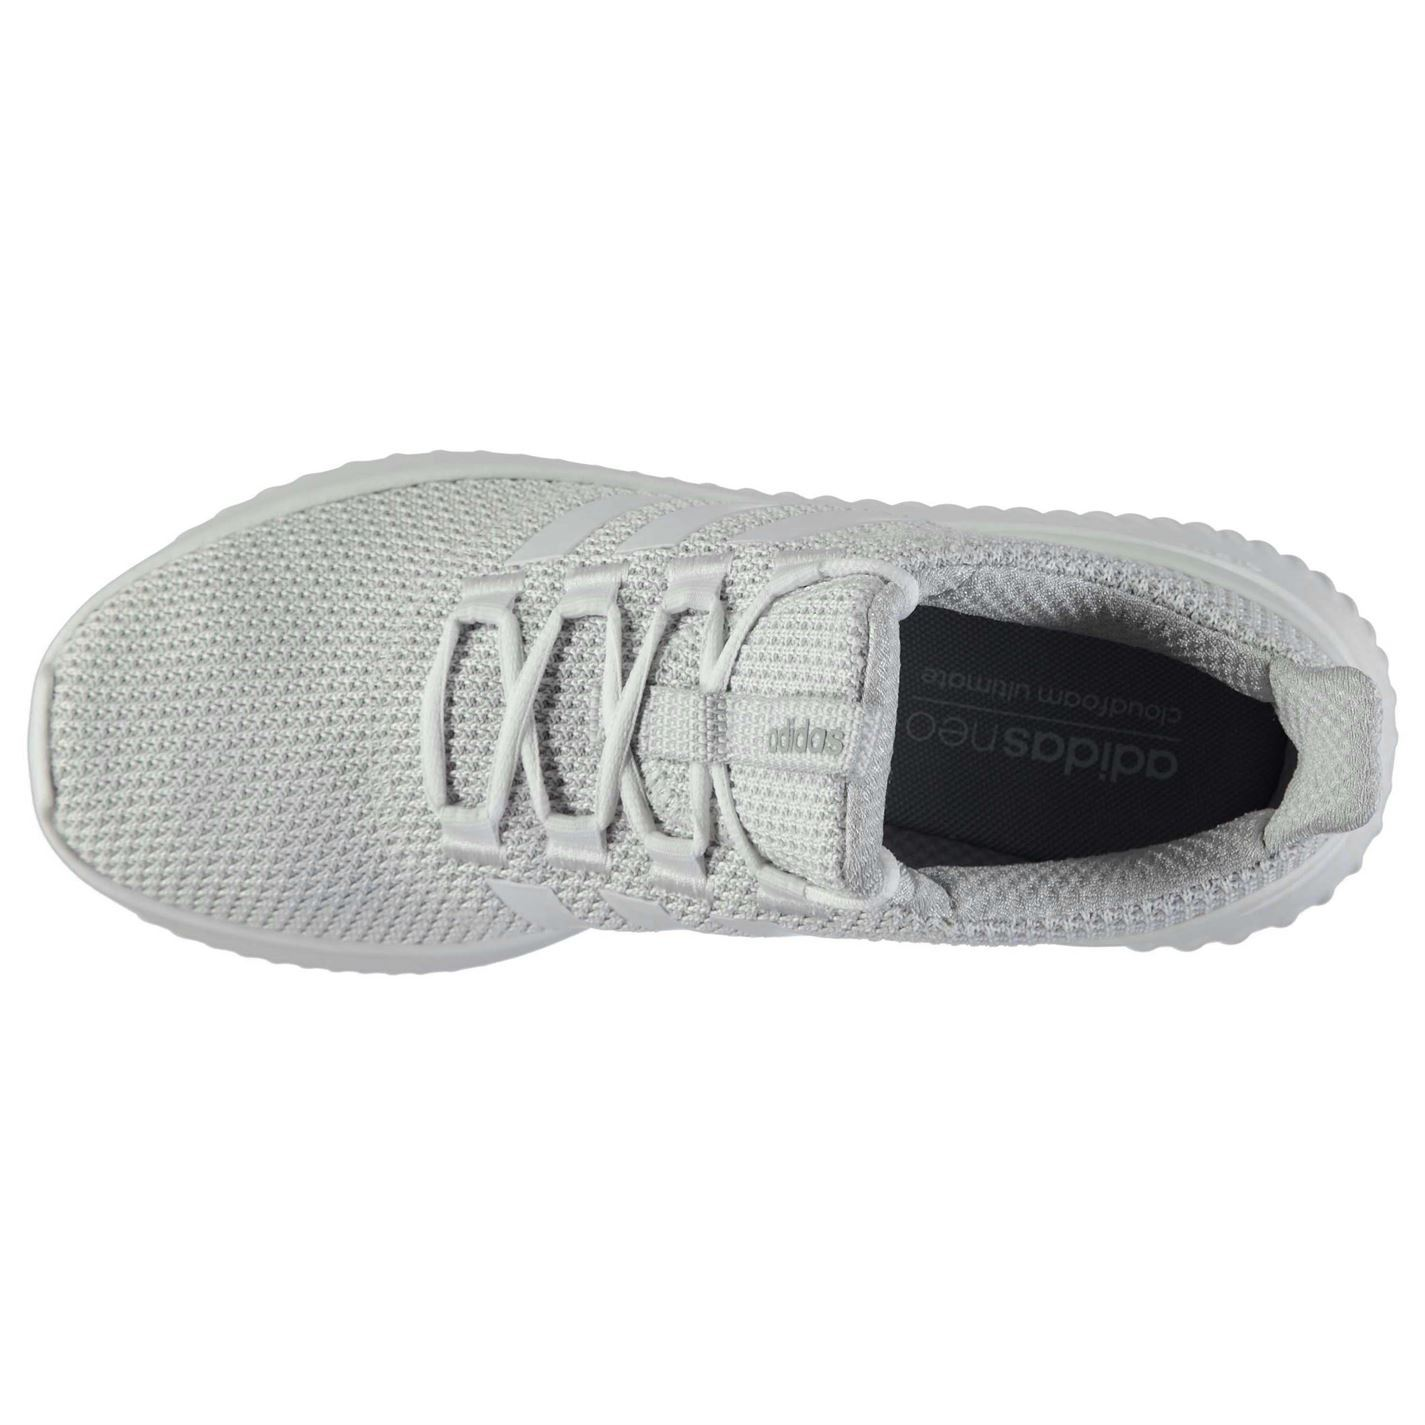 free shipping 59c0c eaaf3 ... adidas Cloudfoam Ultimate Trainers Mens White Athletic Sneakers Shoes